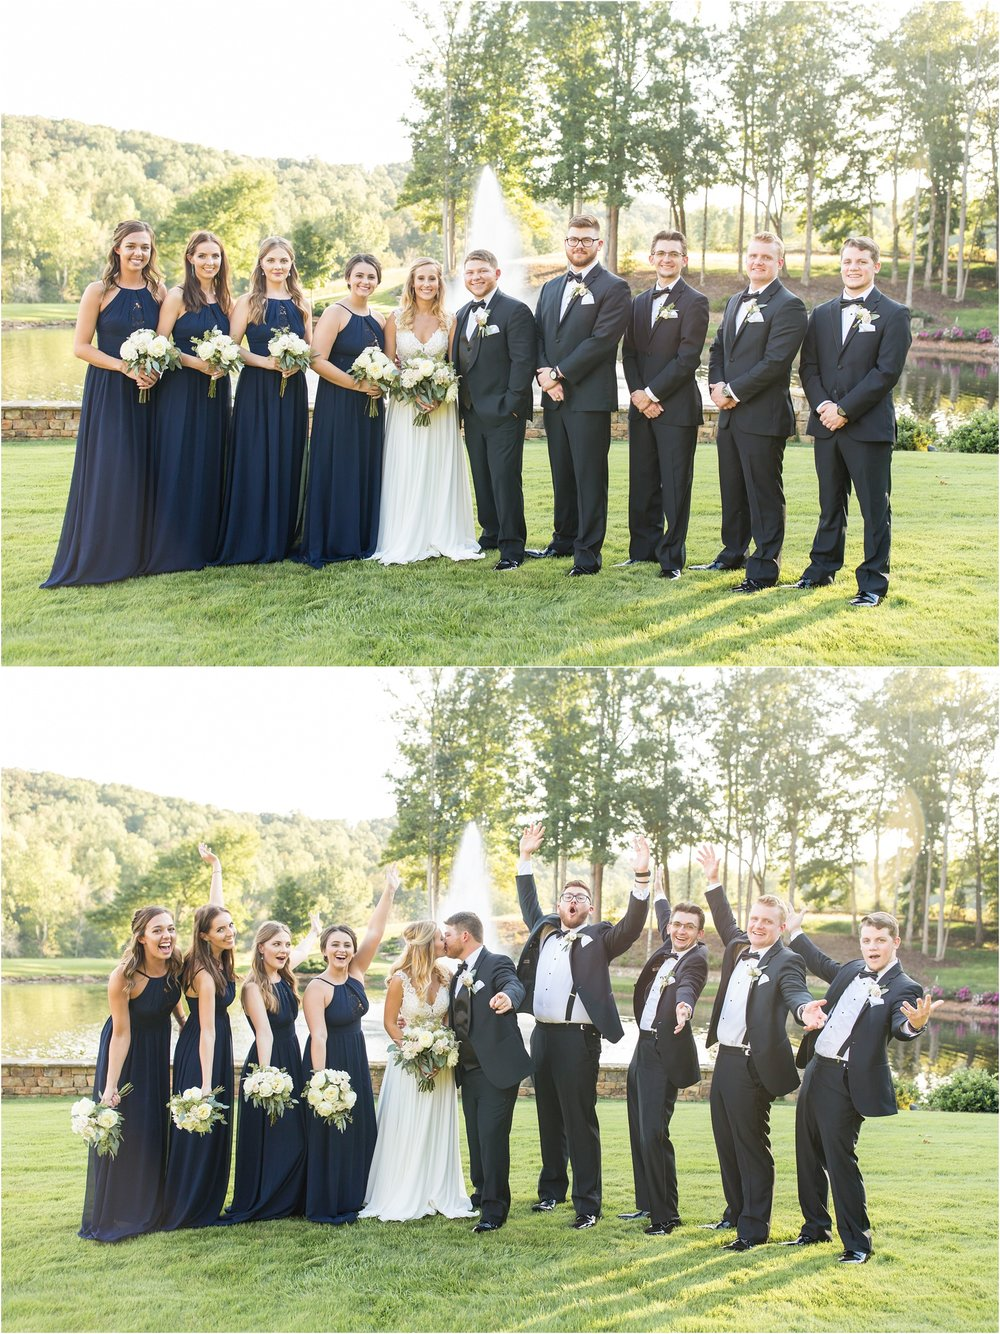 Savannah Eve Photography- Jurek-Woodworth Wedding- Sneak Peek-52.jpg